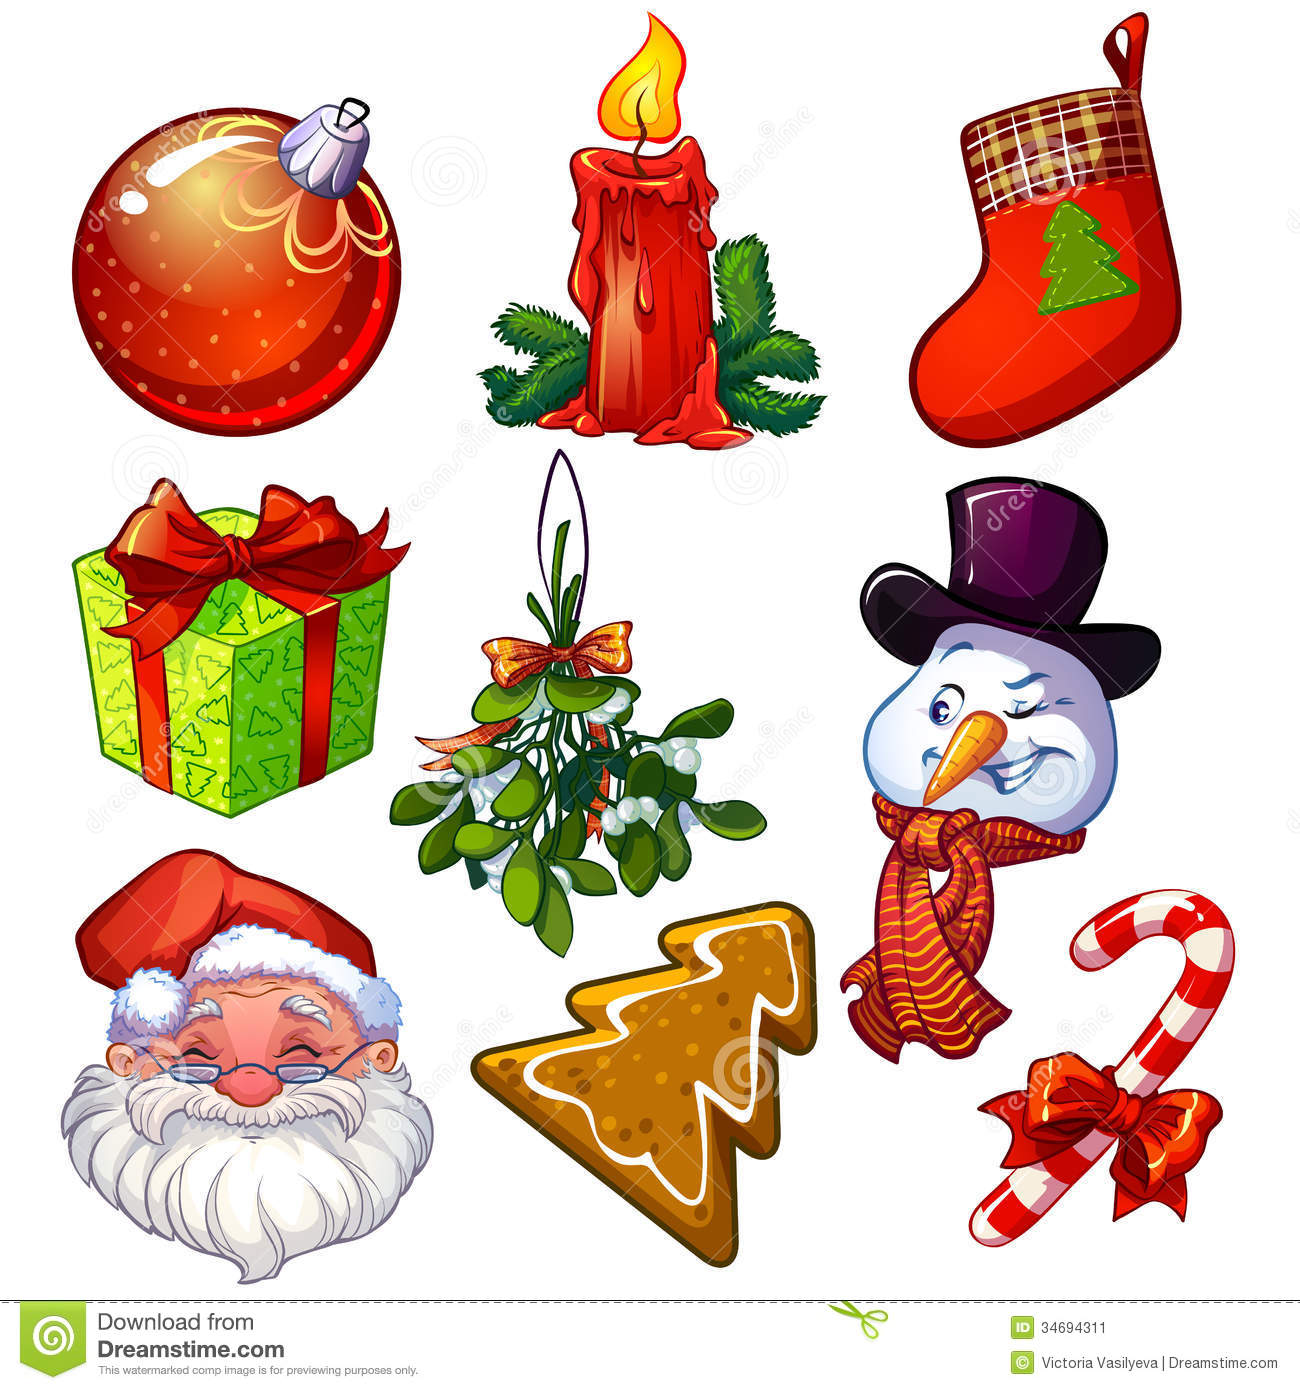 Christmas Set.Christmas Set Stock Vector Illustration Of Isolated 34694311